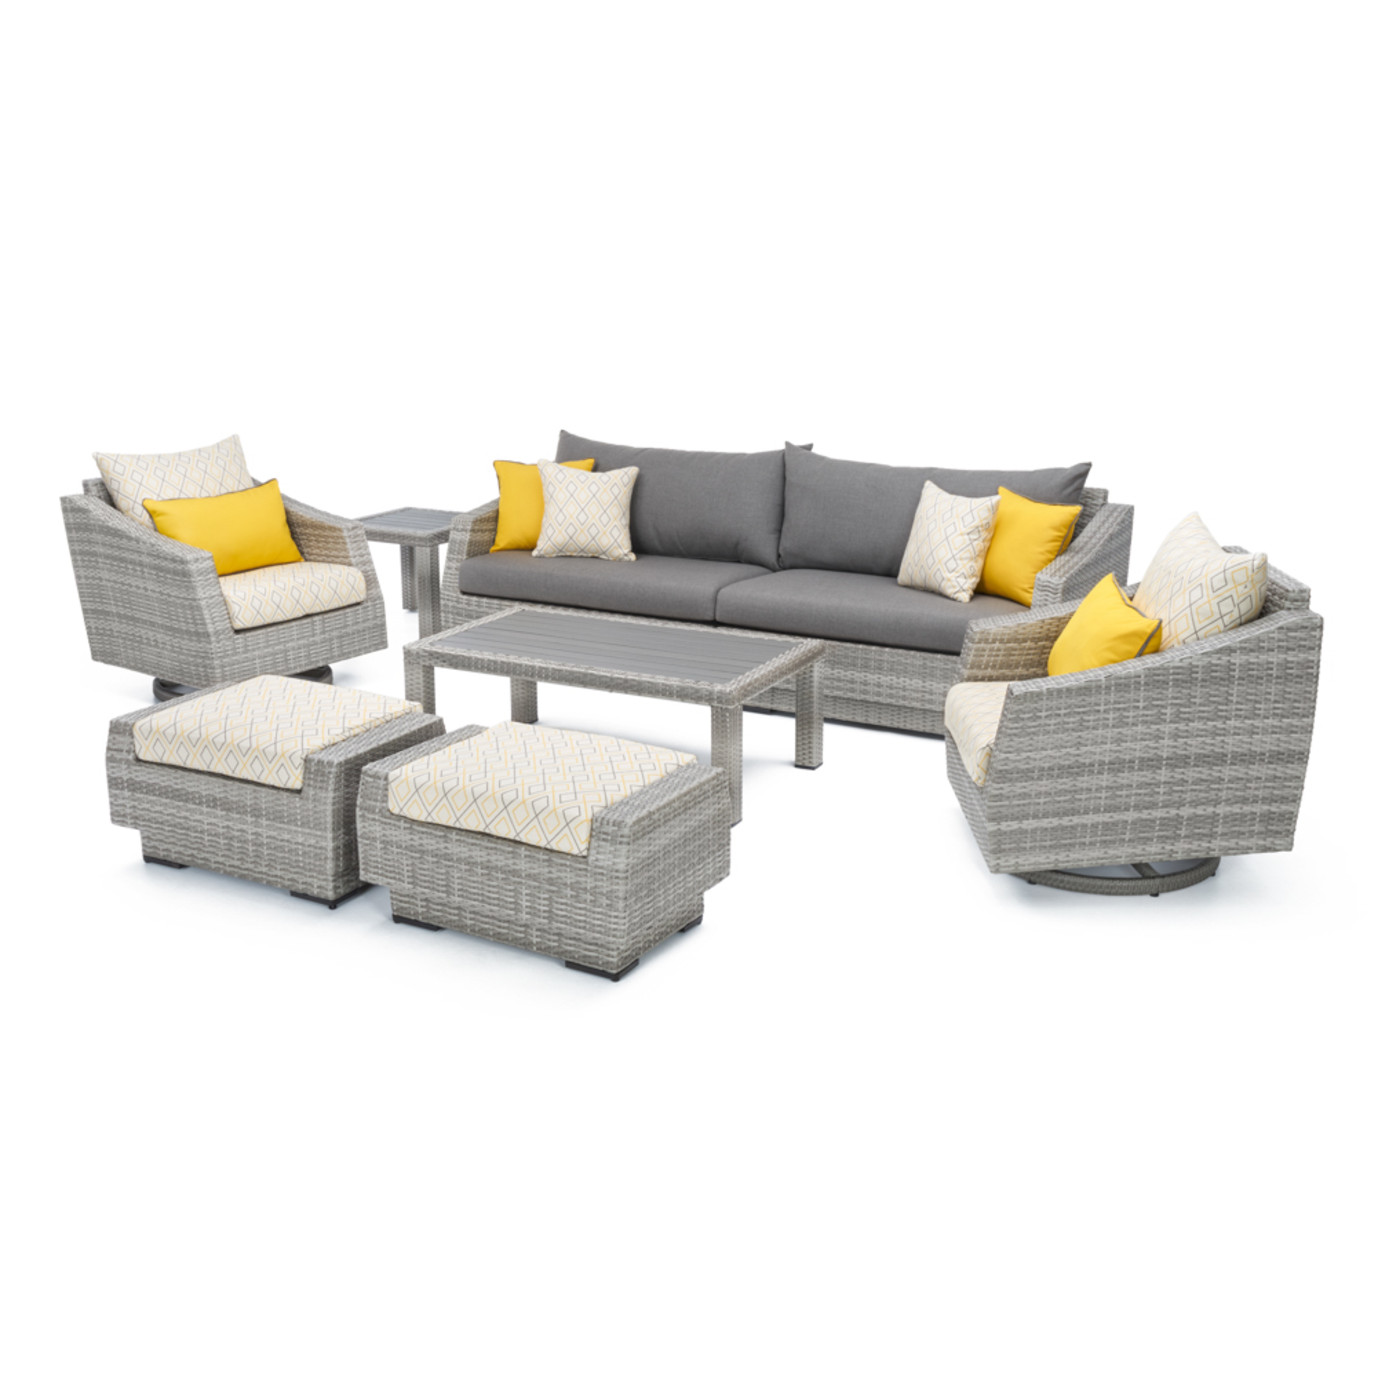 Cannes™ 8pc Sofa & Club Chair Set - Sunflower Yellow Design